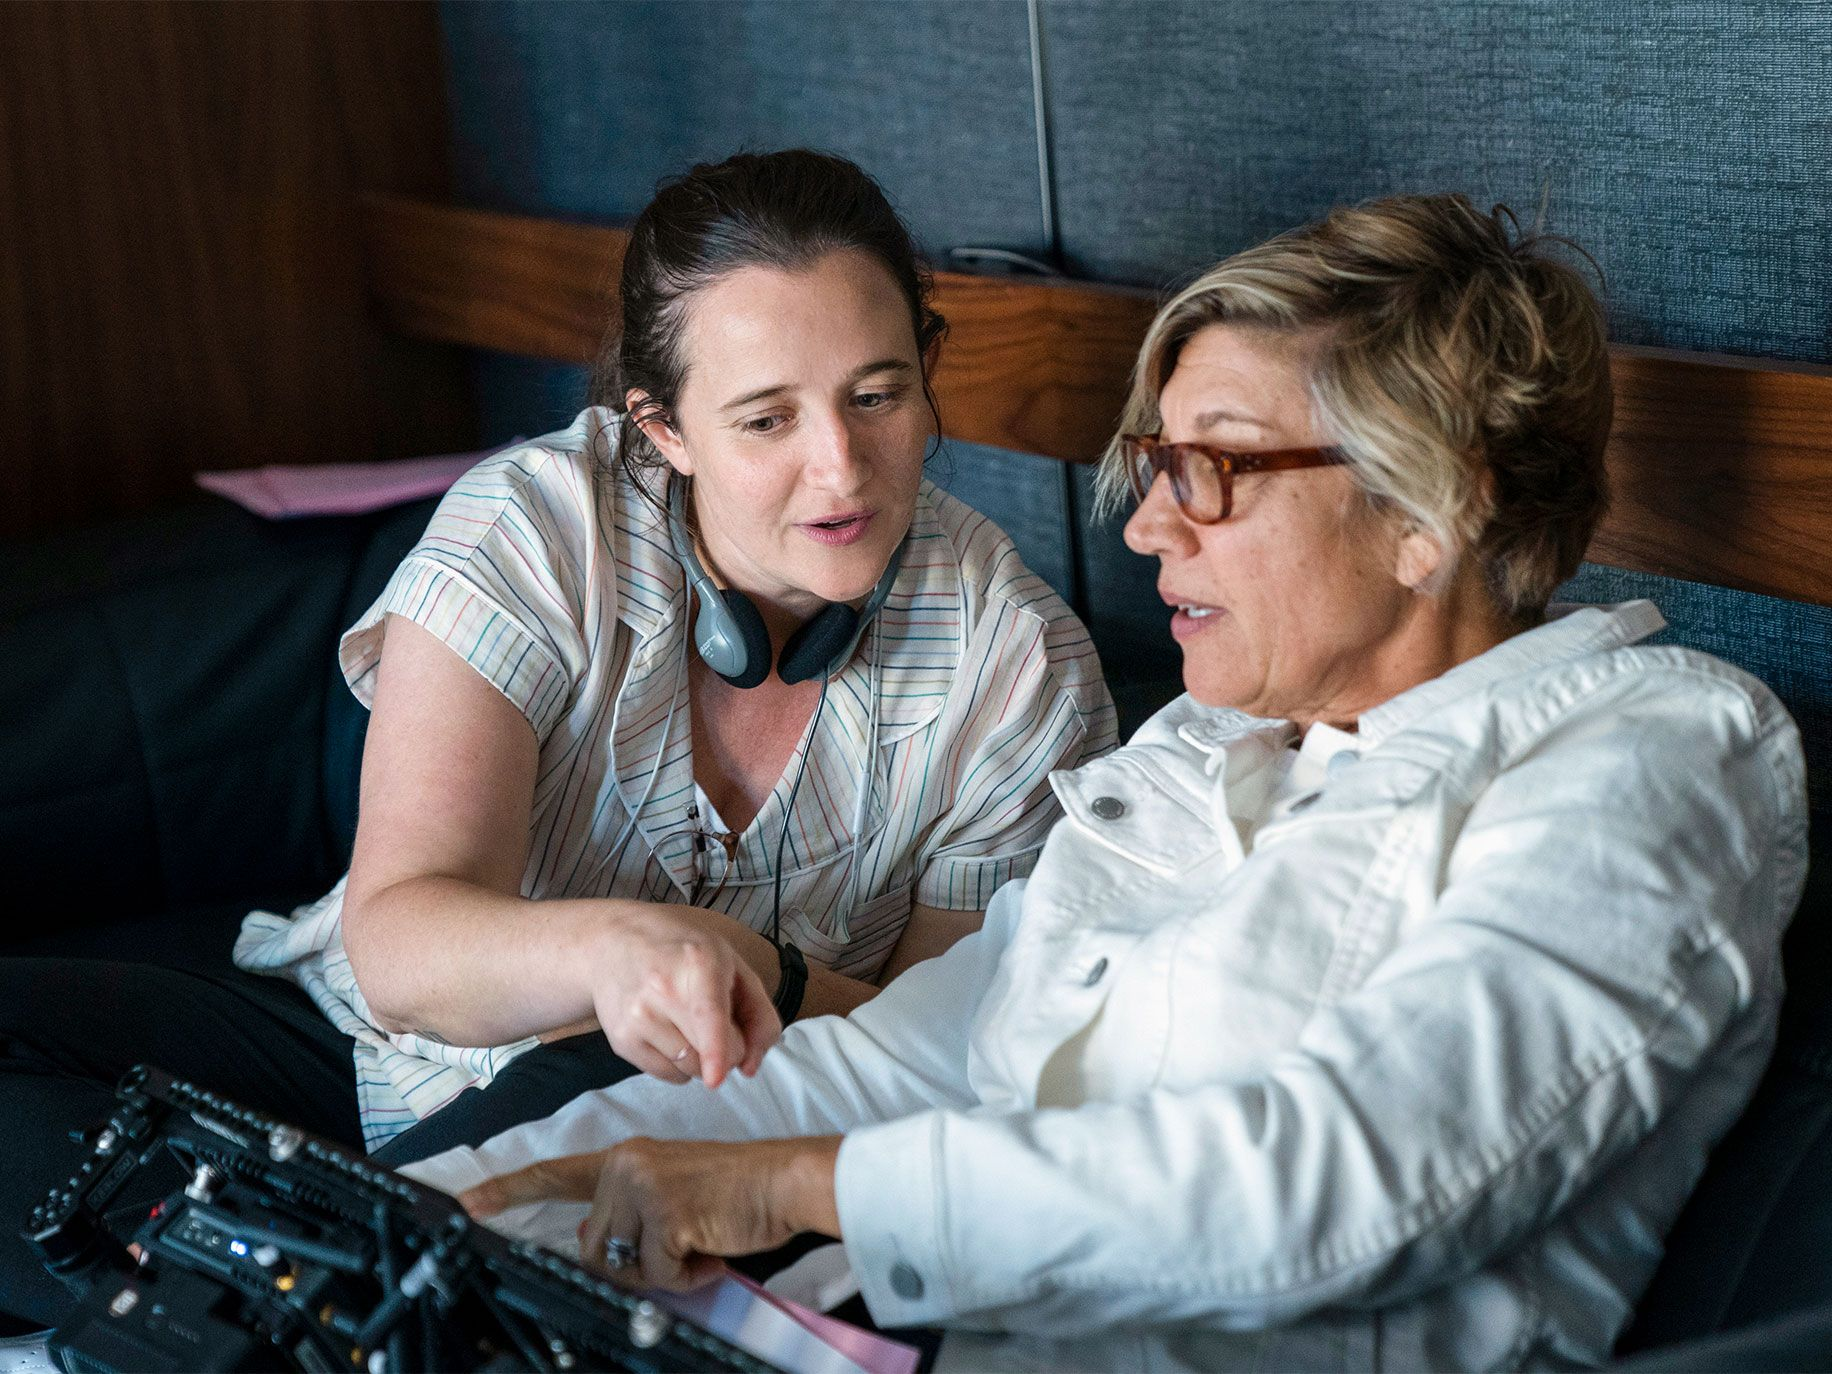 Showrunner Marja Lewis-Ryan (left) on set. Lewis-Ryan has hired two Latina writers for the show.